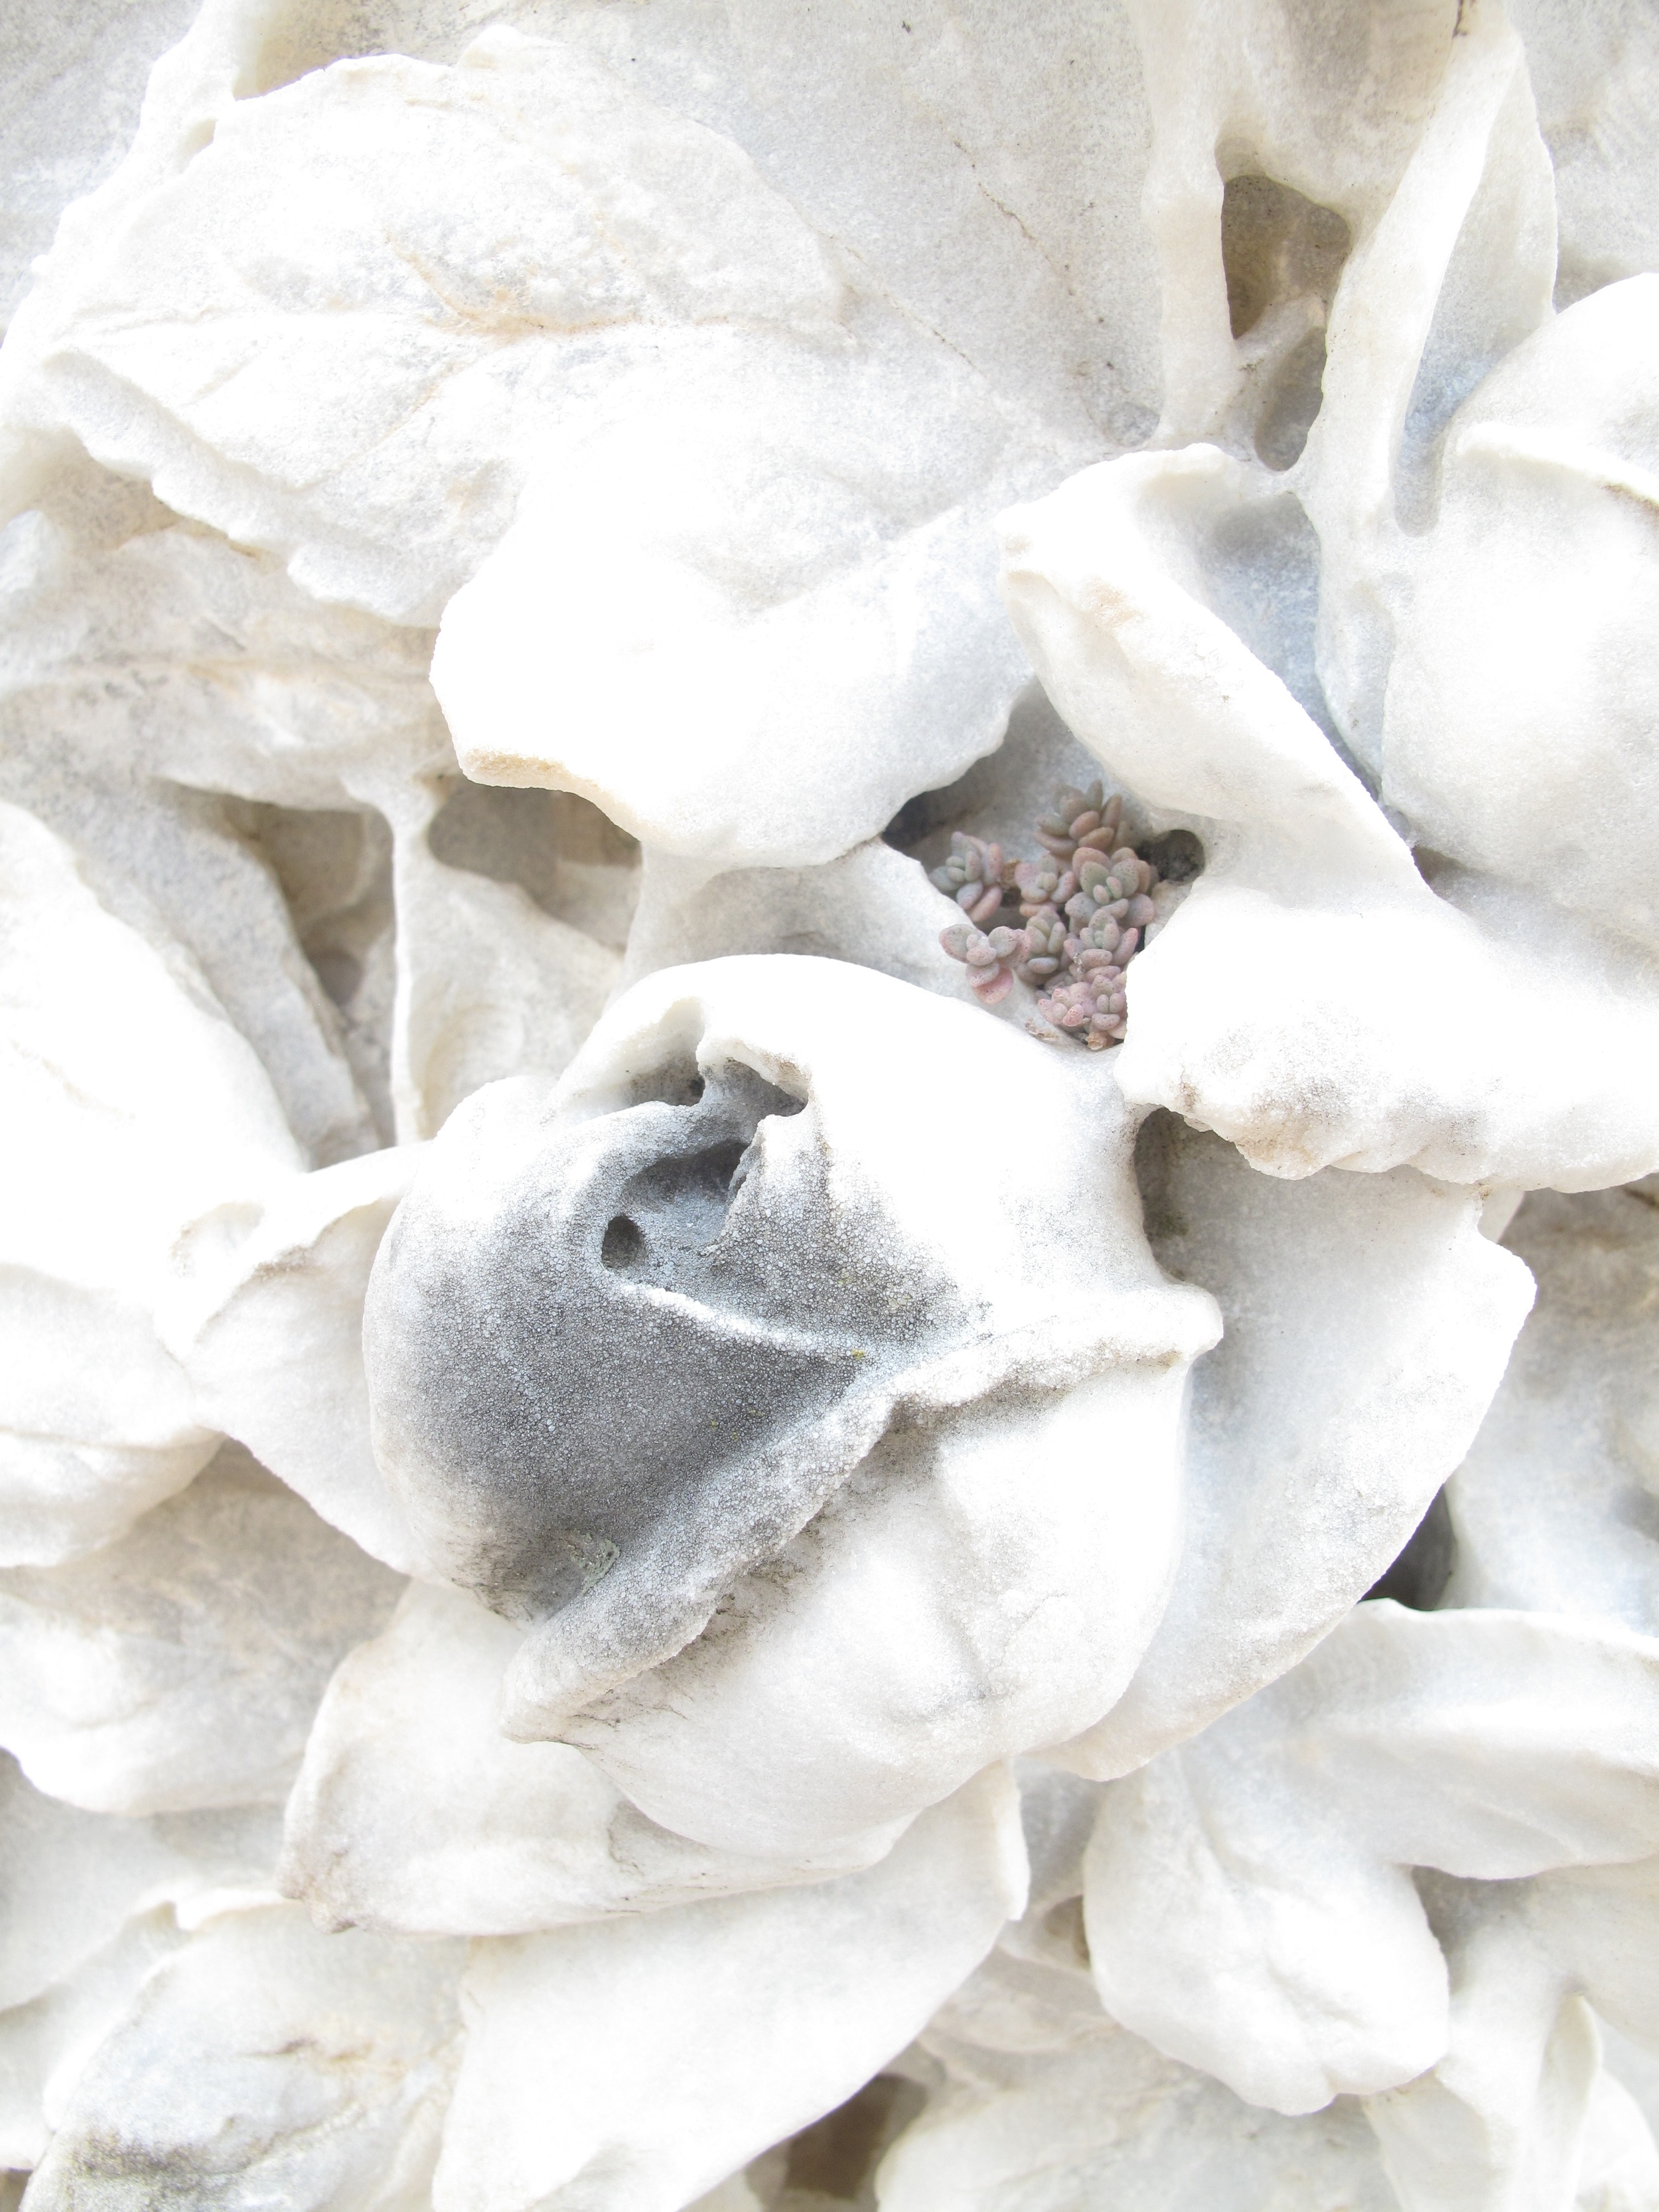 White stone flower carvings and small succulent plant